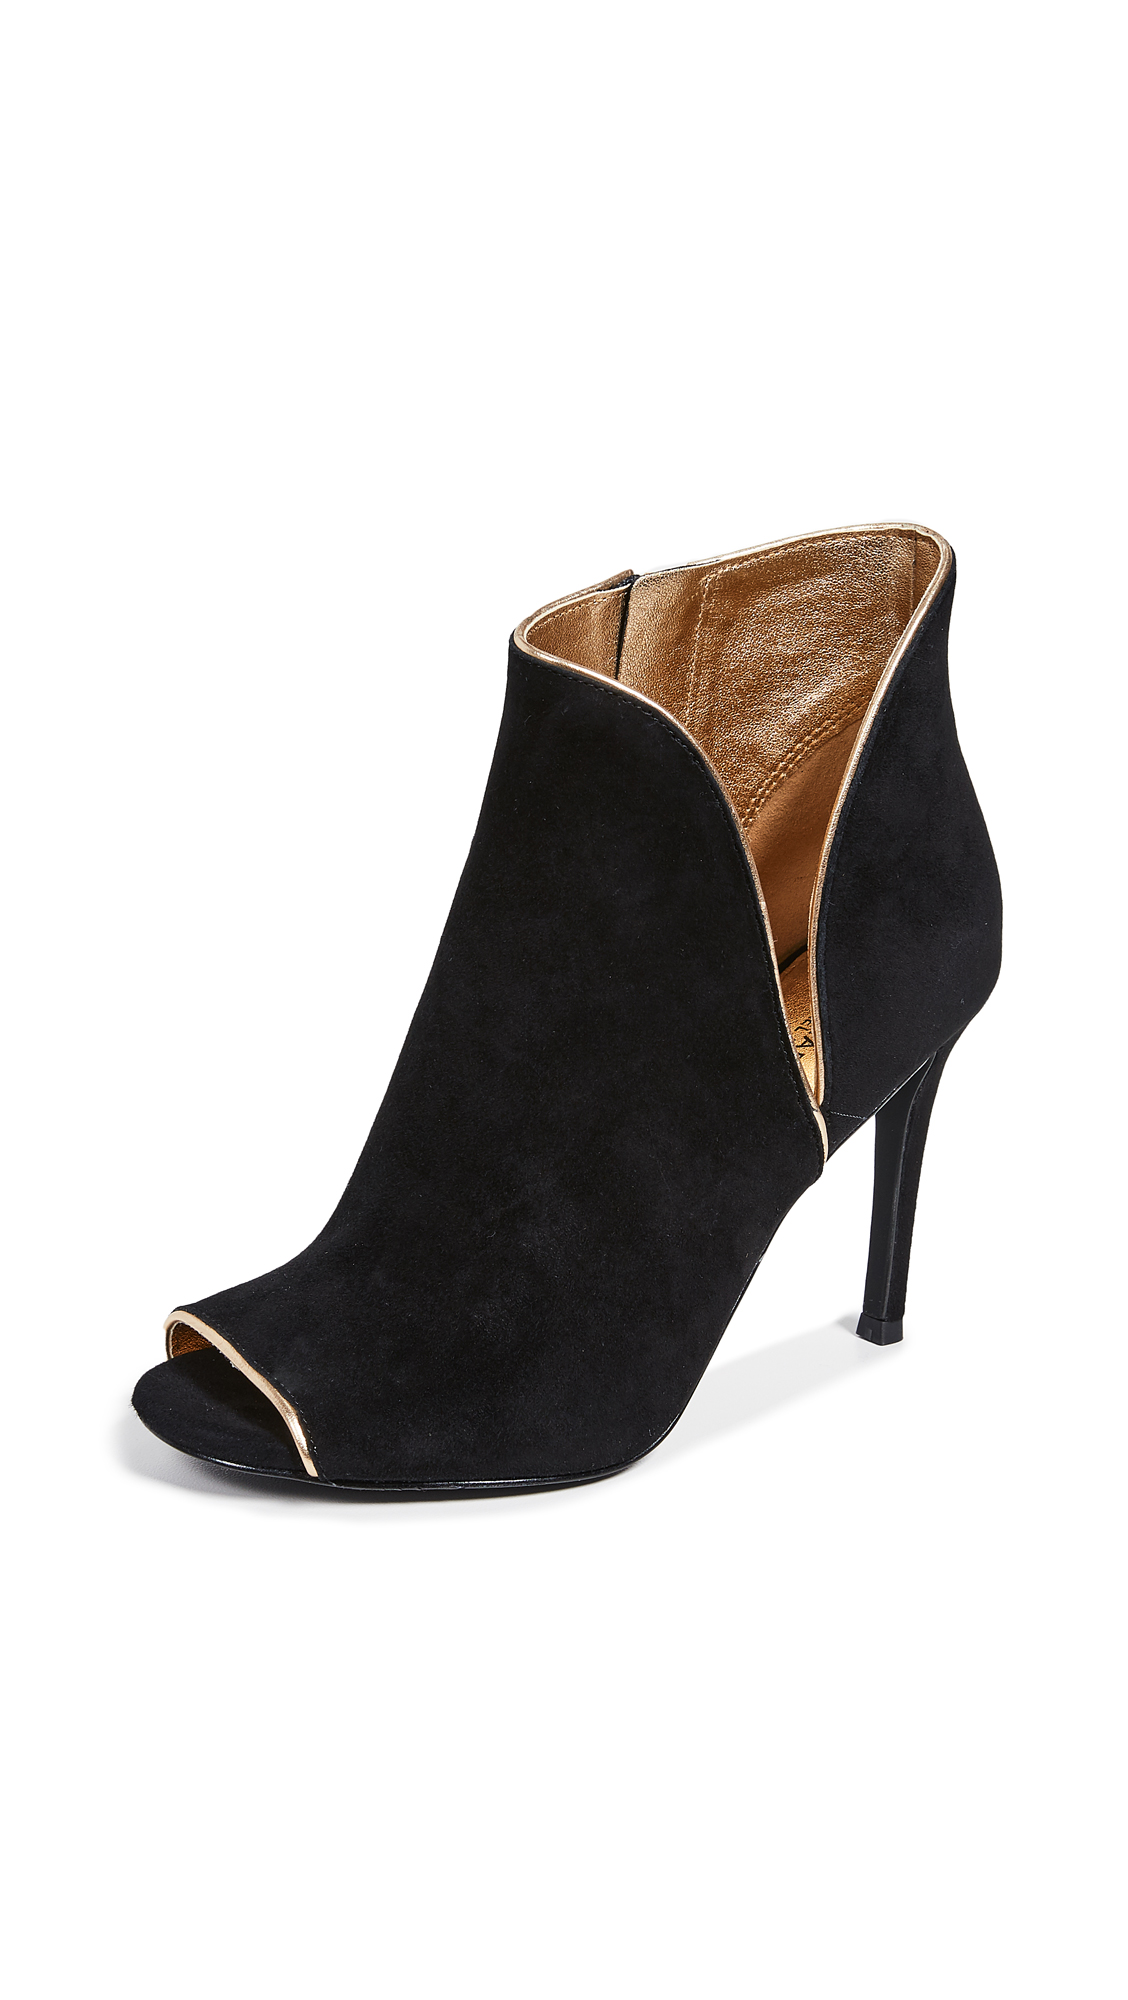 MICHAEL Michael Kors Harper Open Toe Booties - Black